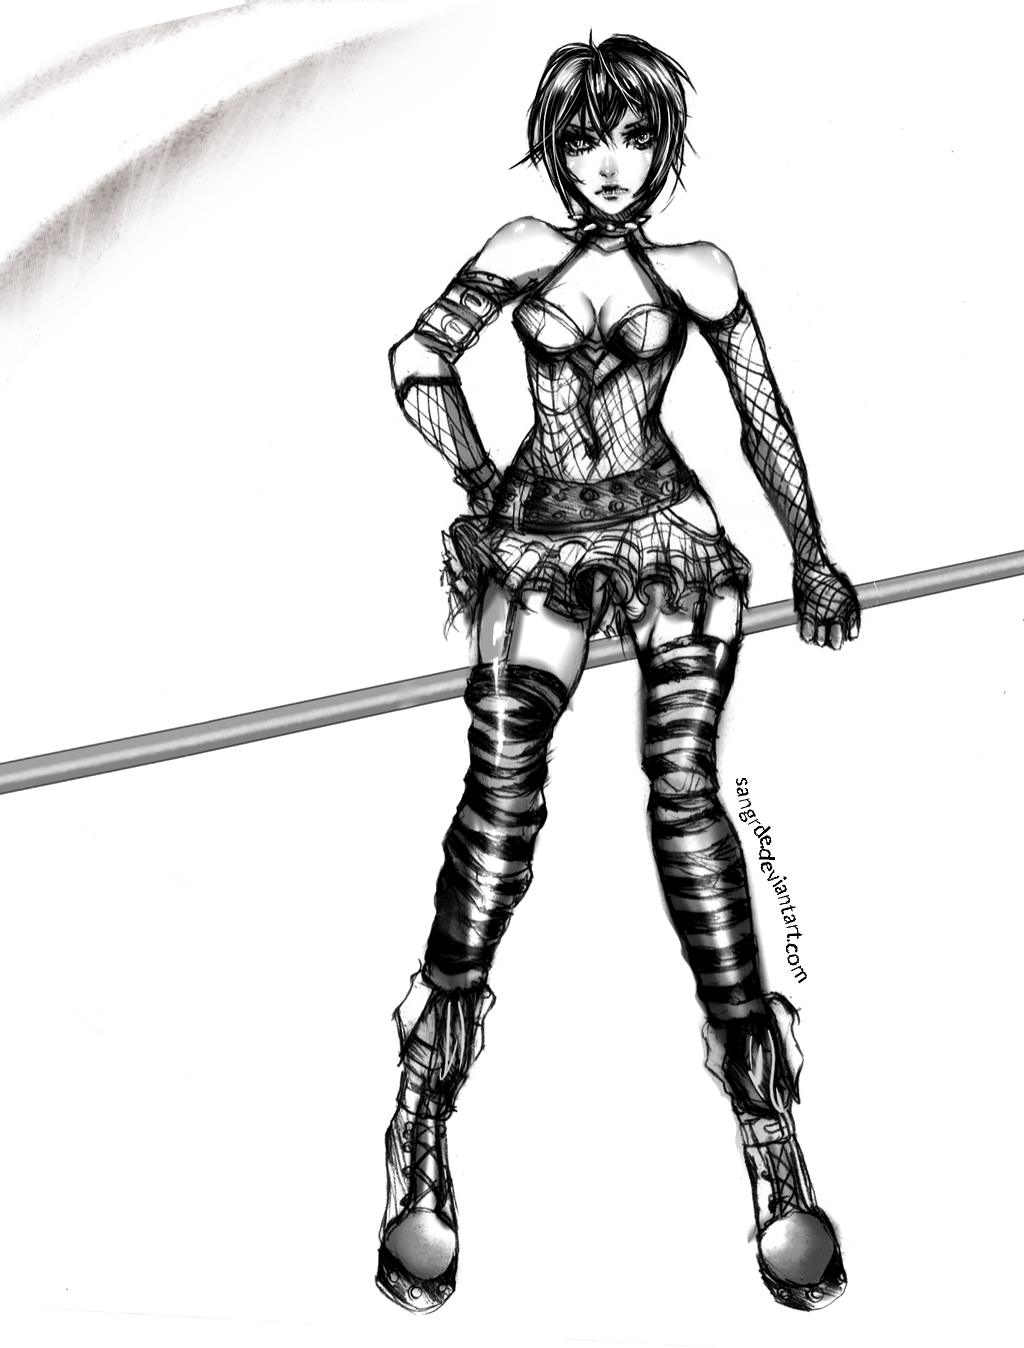 Drawn scythe gothic With sketch girl Goth